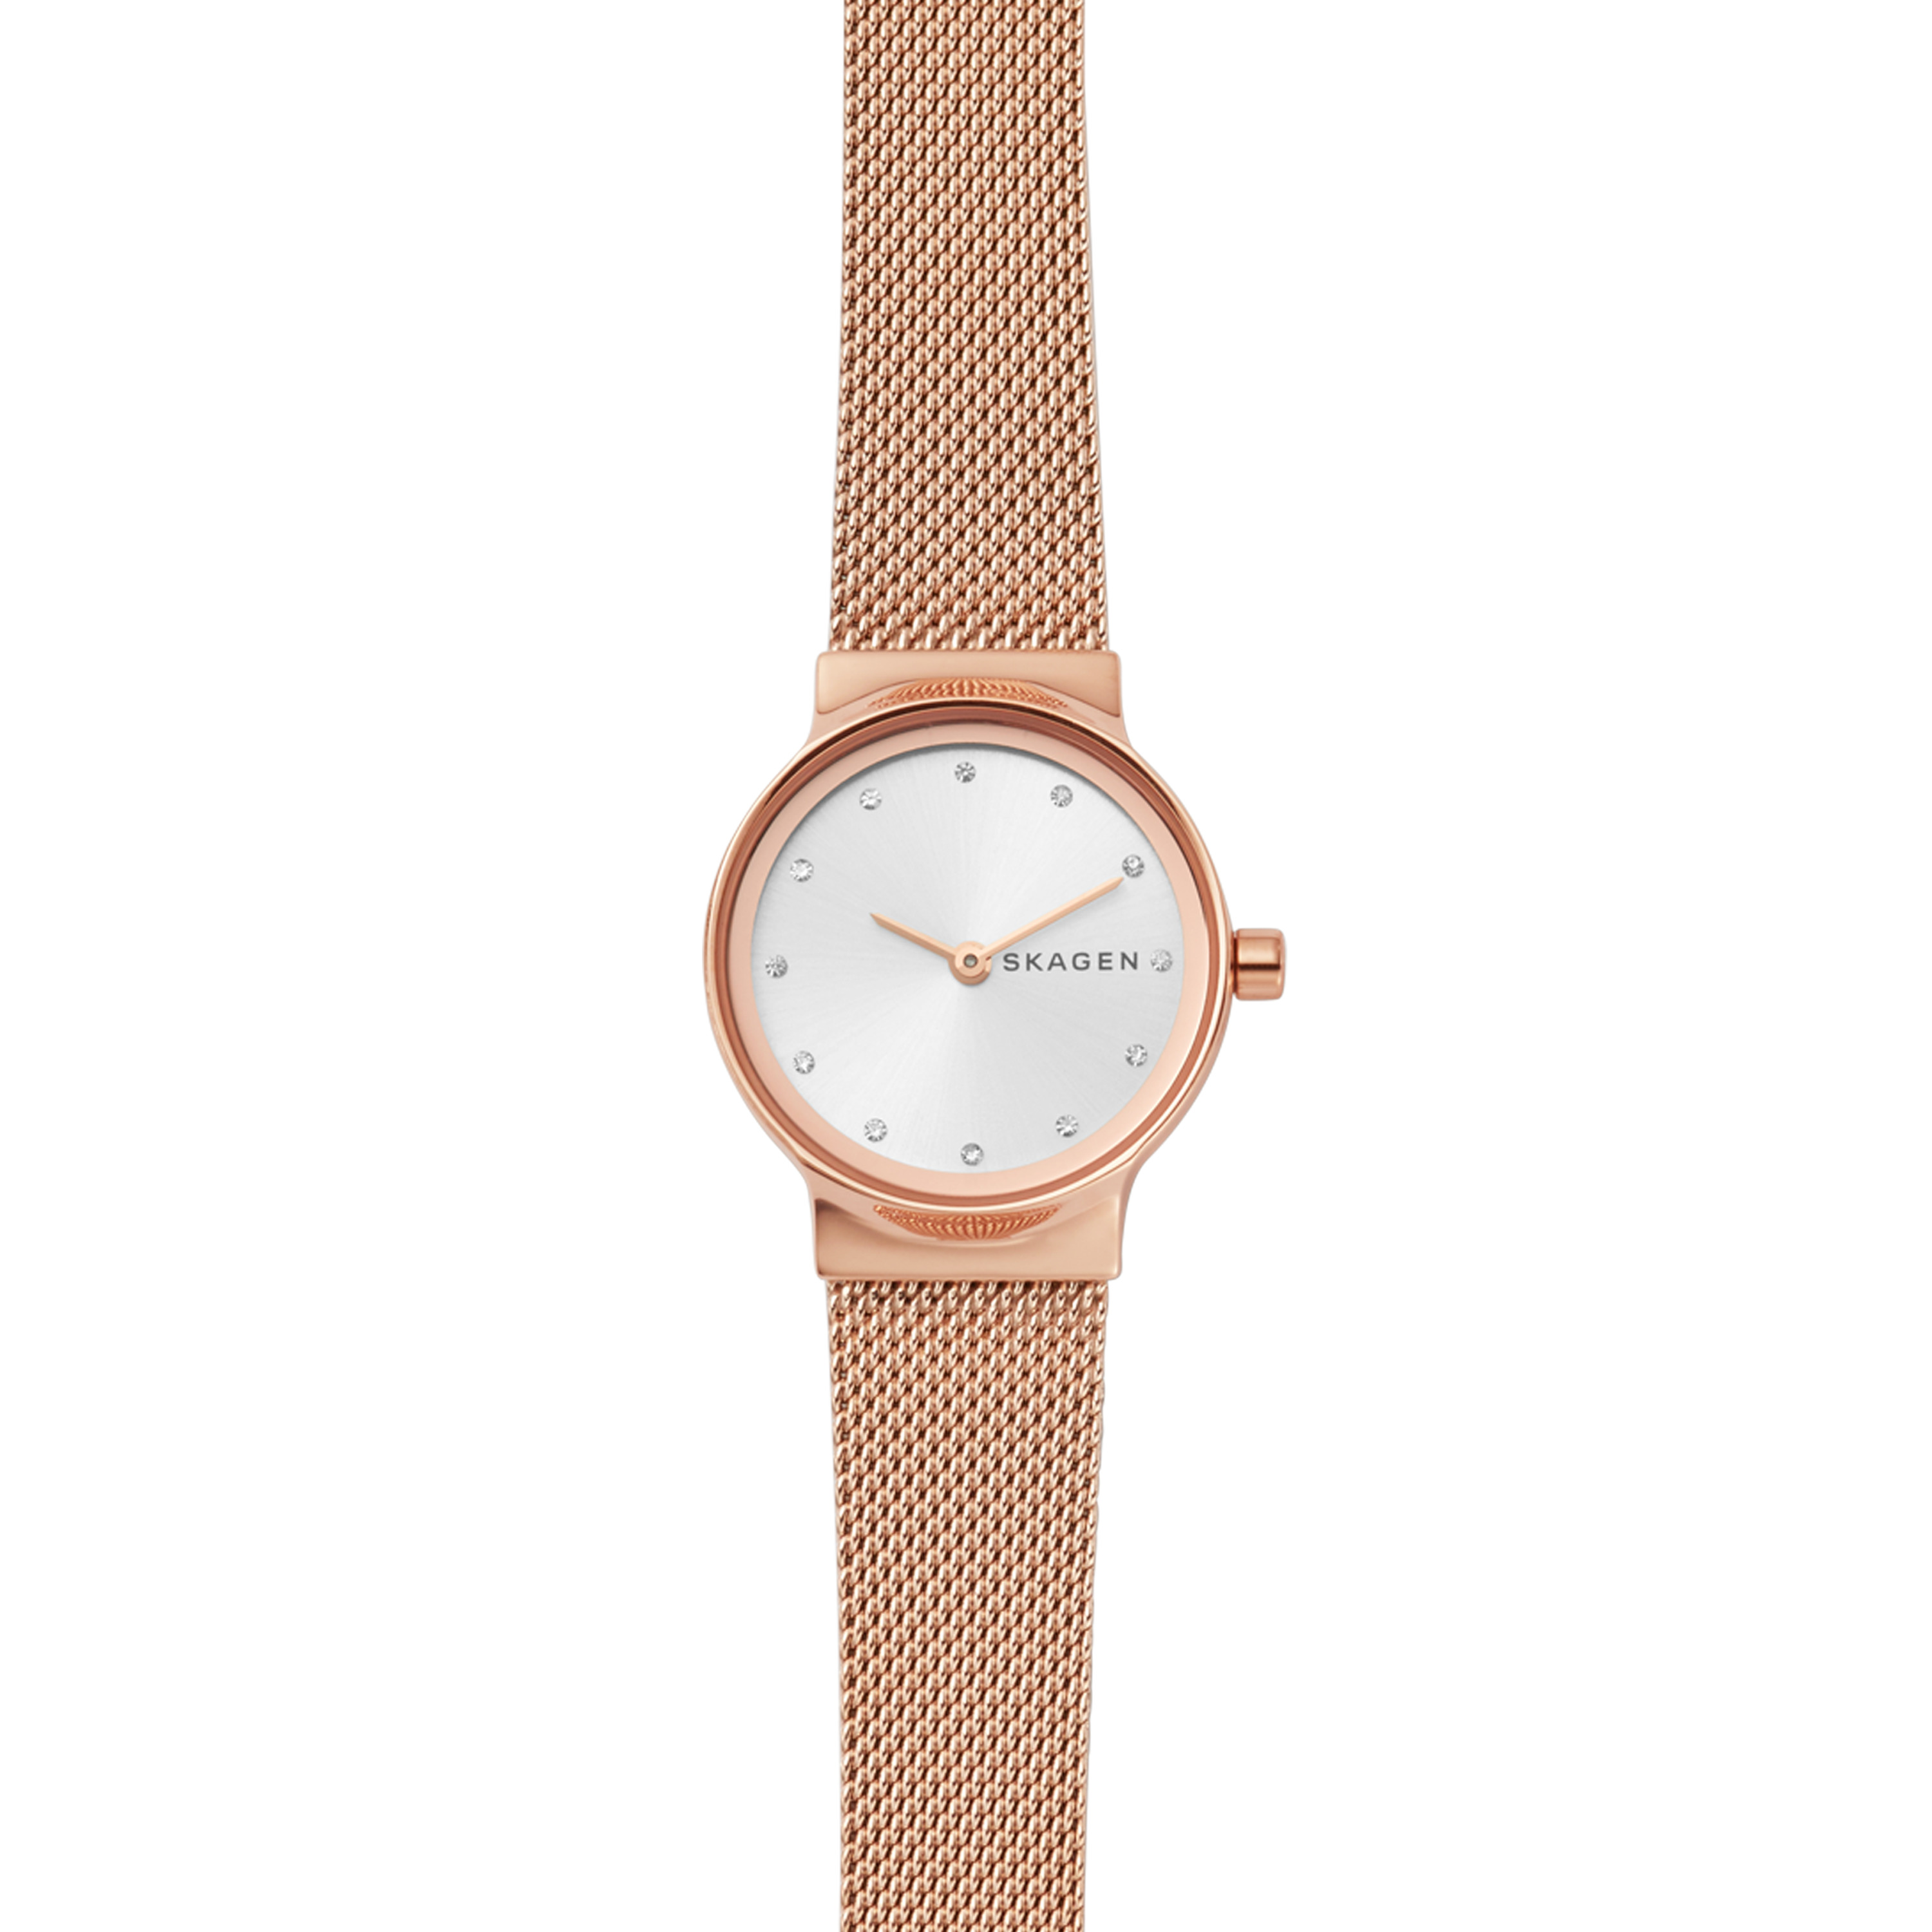 Skagen SKW2665 Freja 26 mm Dameshorloge